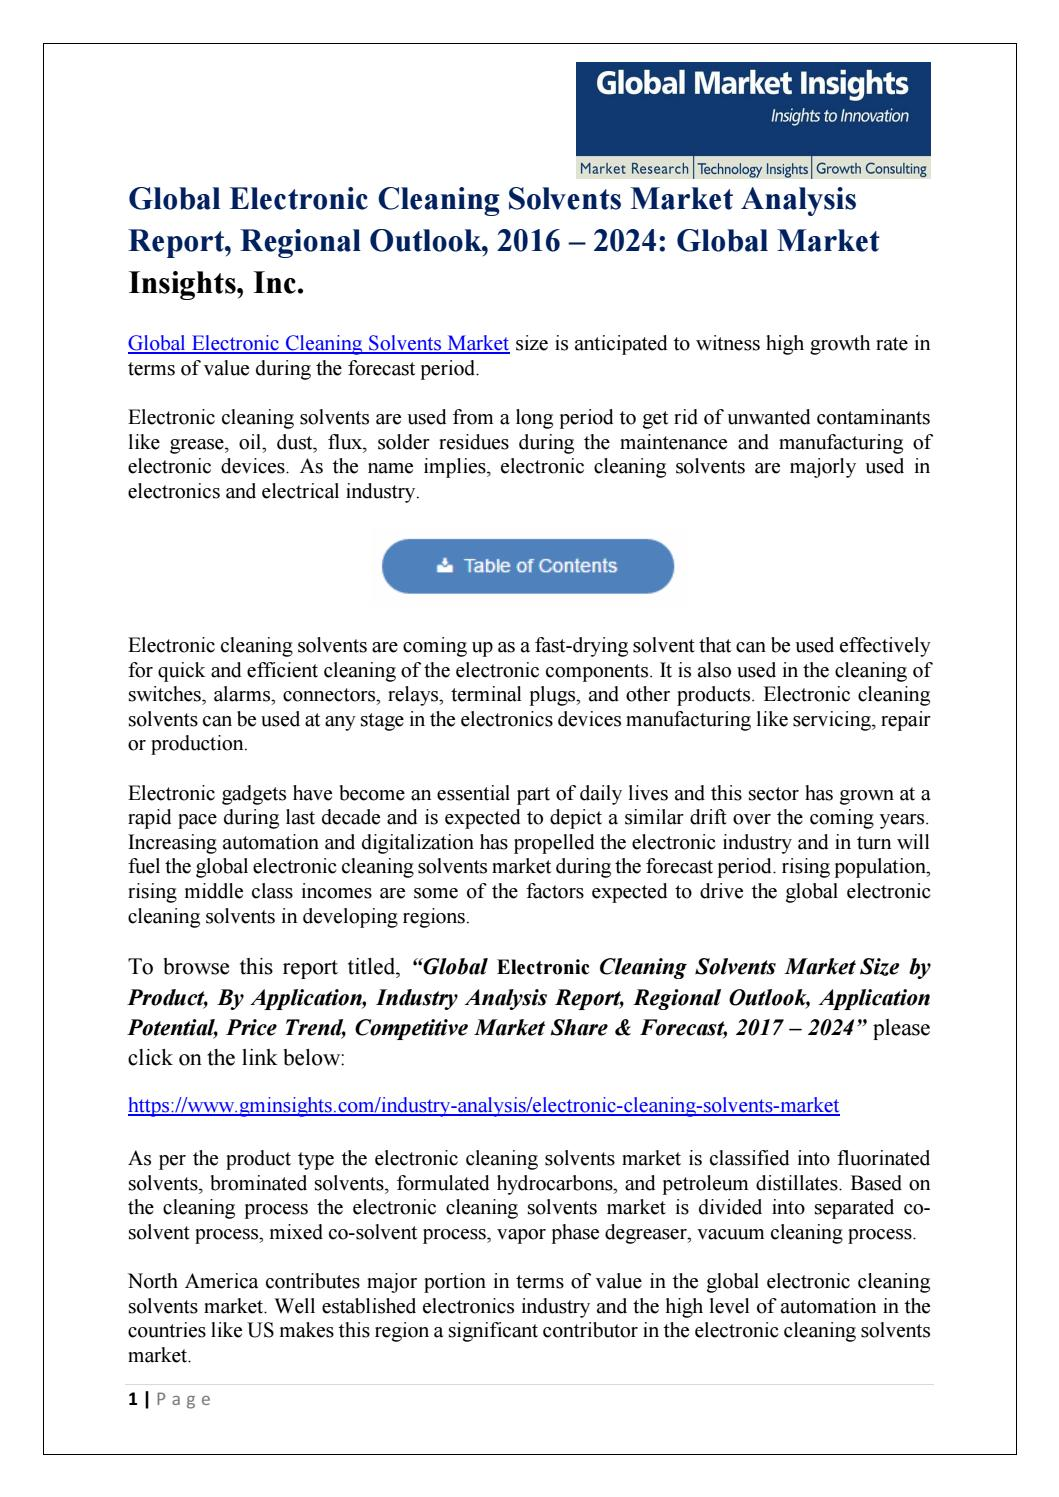 Global Electronic Cleaning Solvents Market Analysis Report, Regional